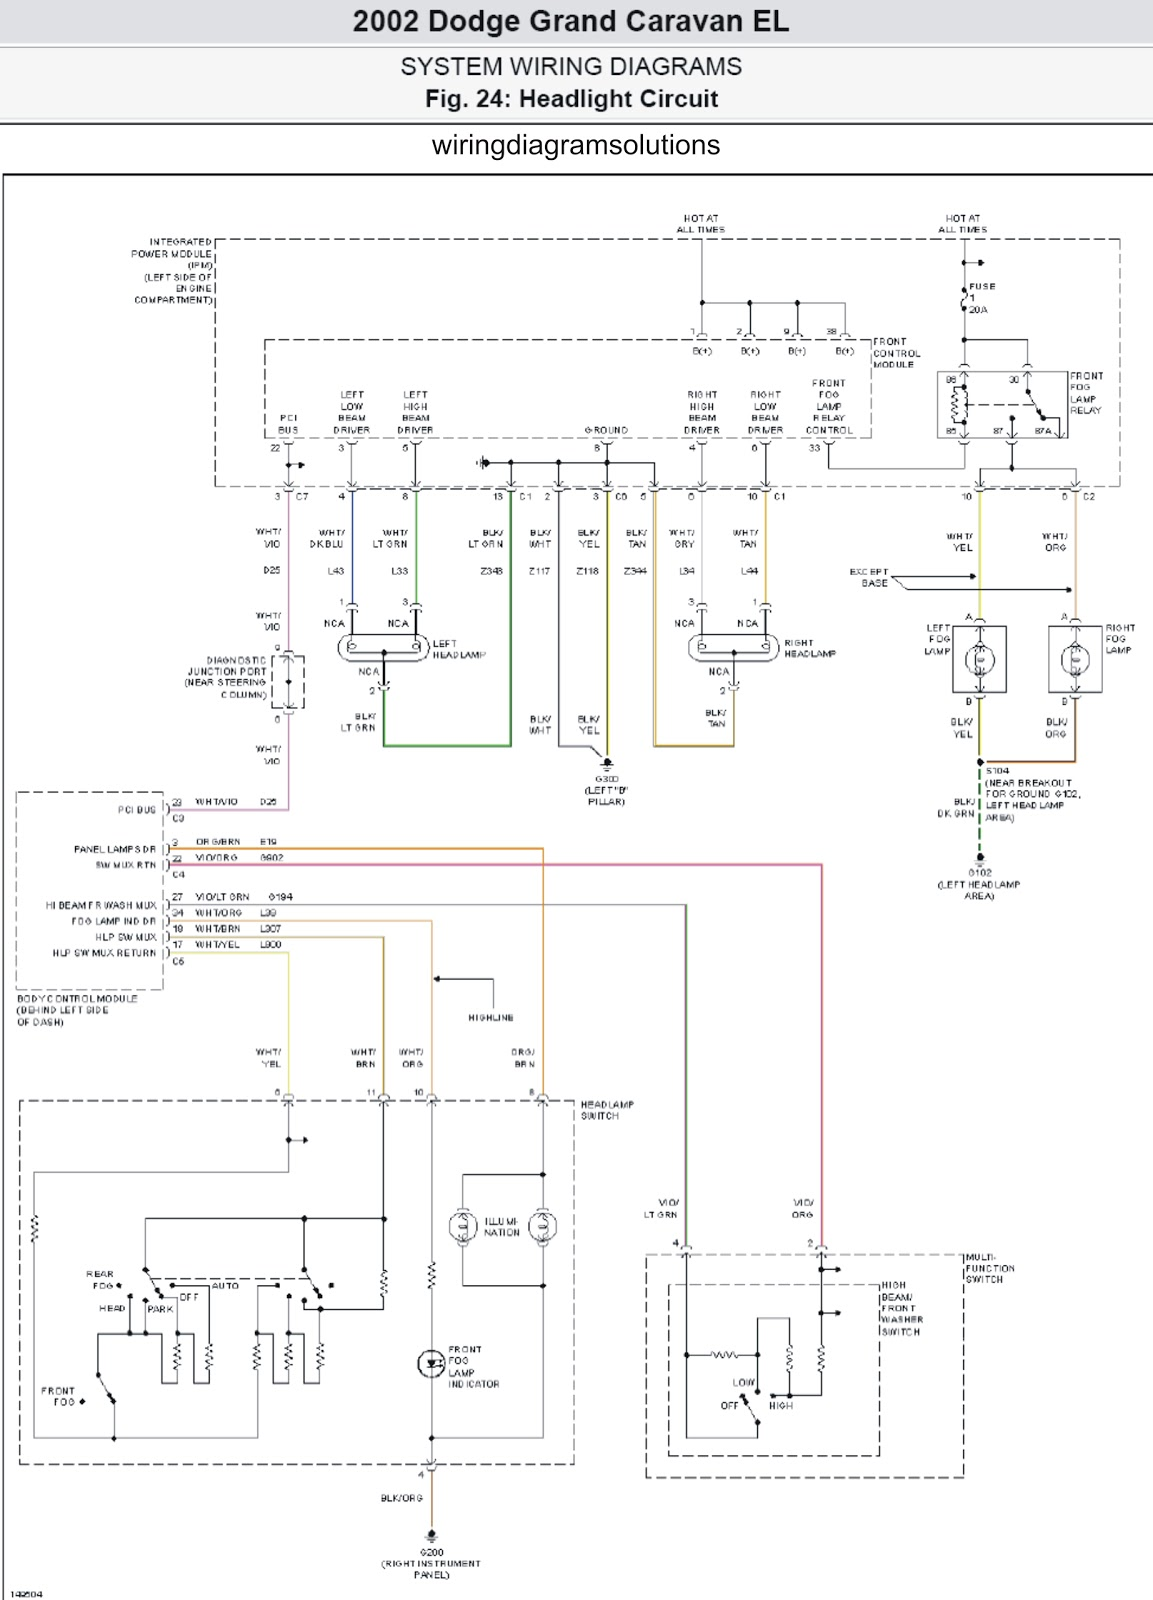 2002+dodge+caravan+Headlight+Circuit wiring diagram for 2015 dodge caravan readingrat net free dodge wiring diagrams at honlapkeszites.co